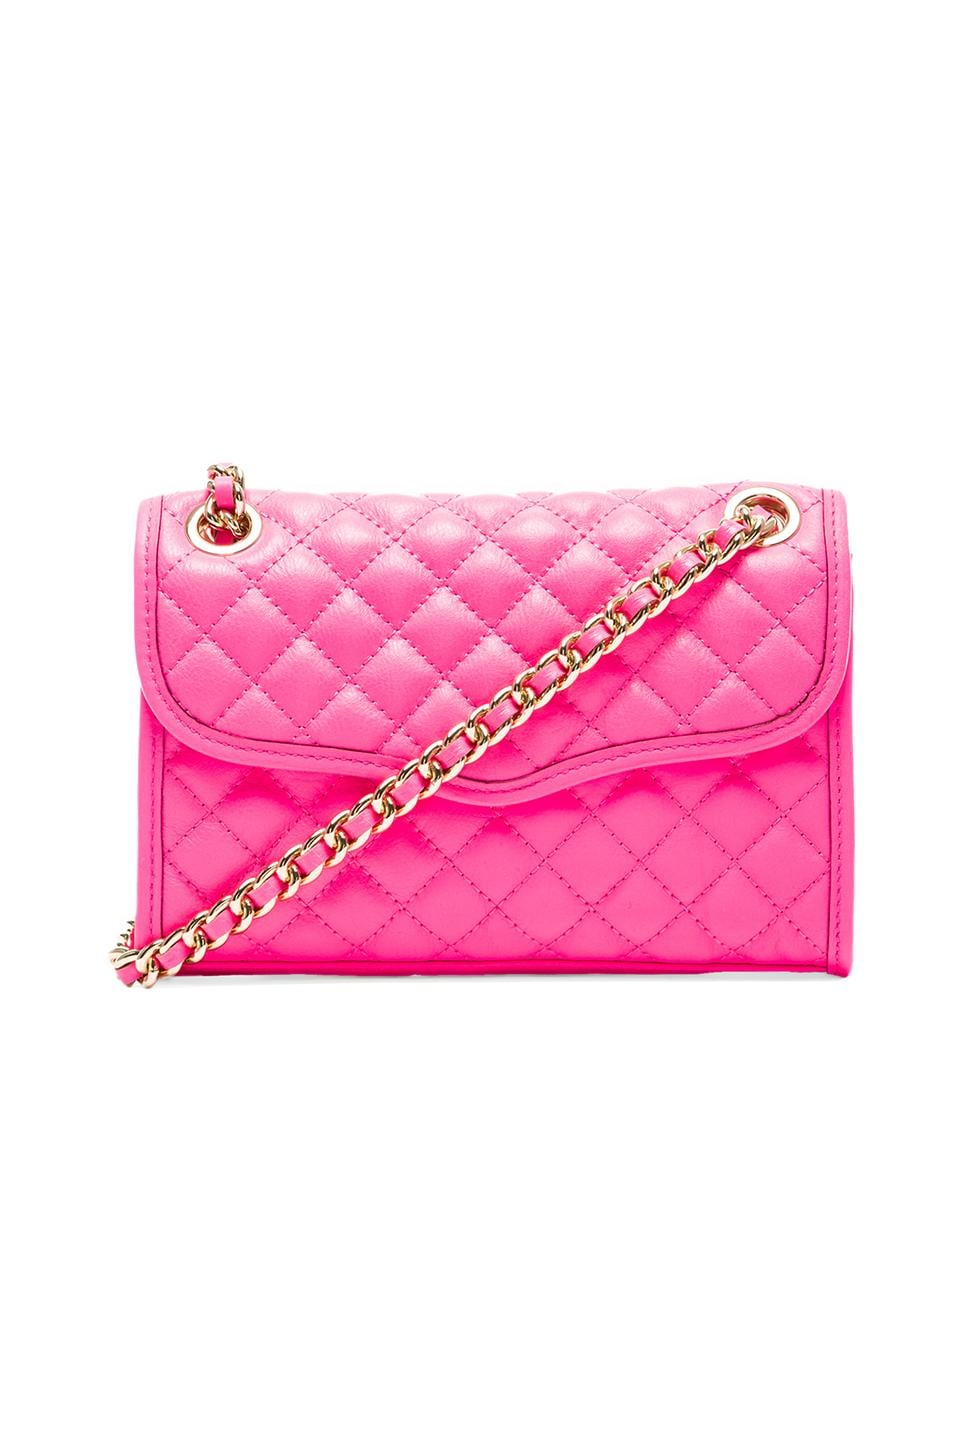 Rebecca Minkoff Mini Affair in Neon Pink